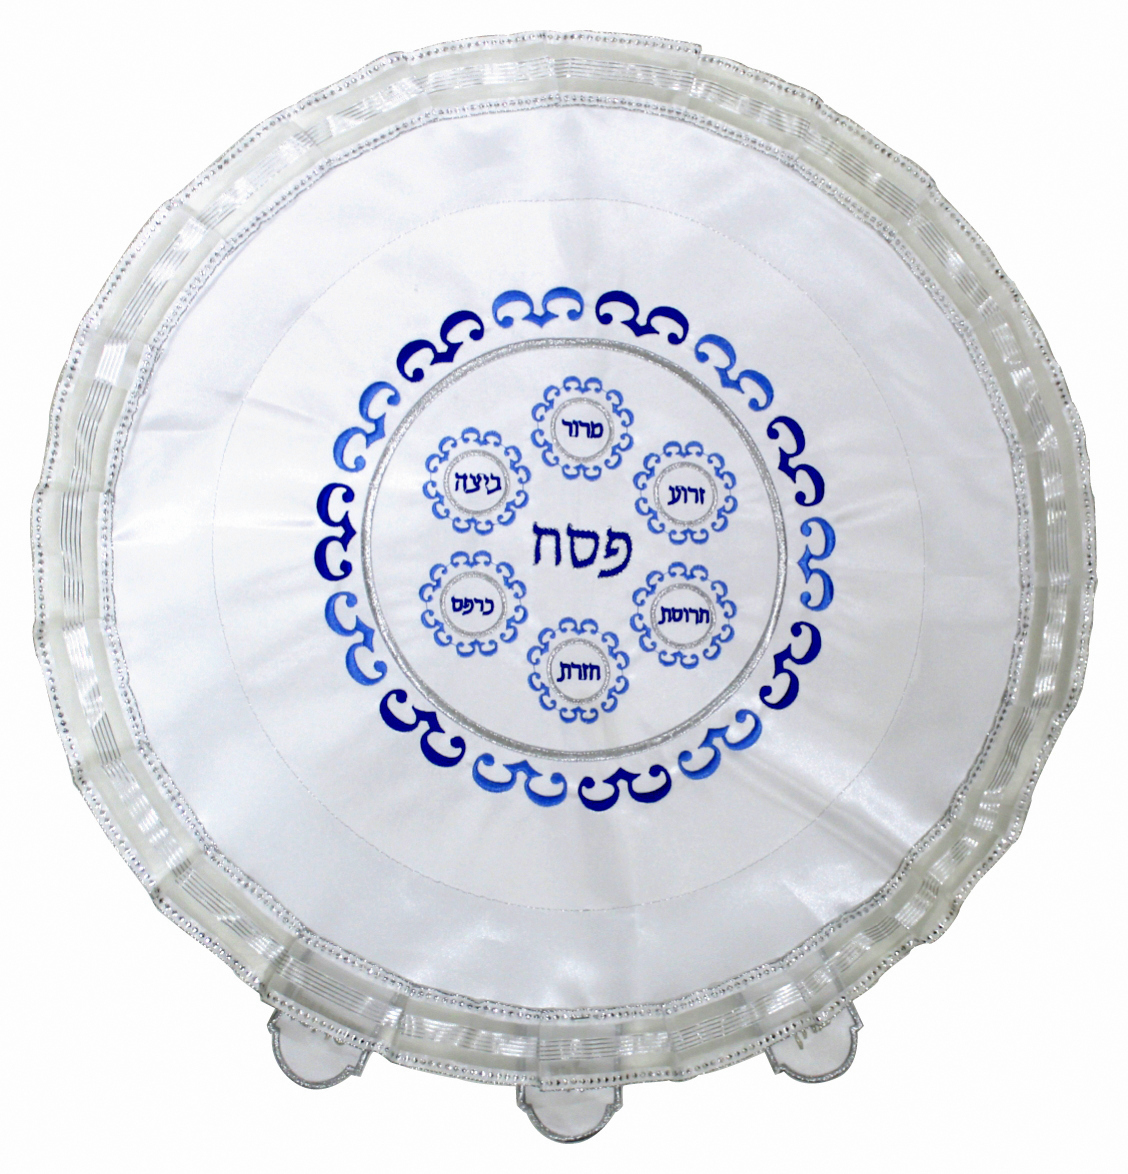 Judaica Passover Seder Plate Cover Blue White Satin Embroidered Silver Rim 20""